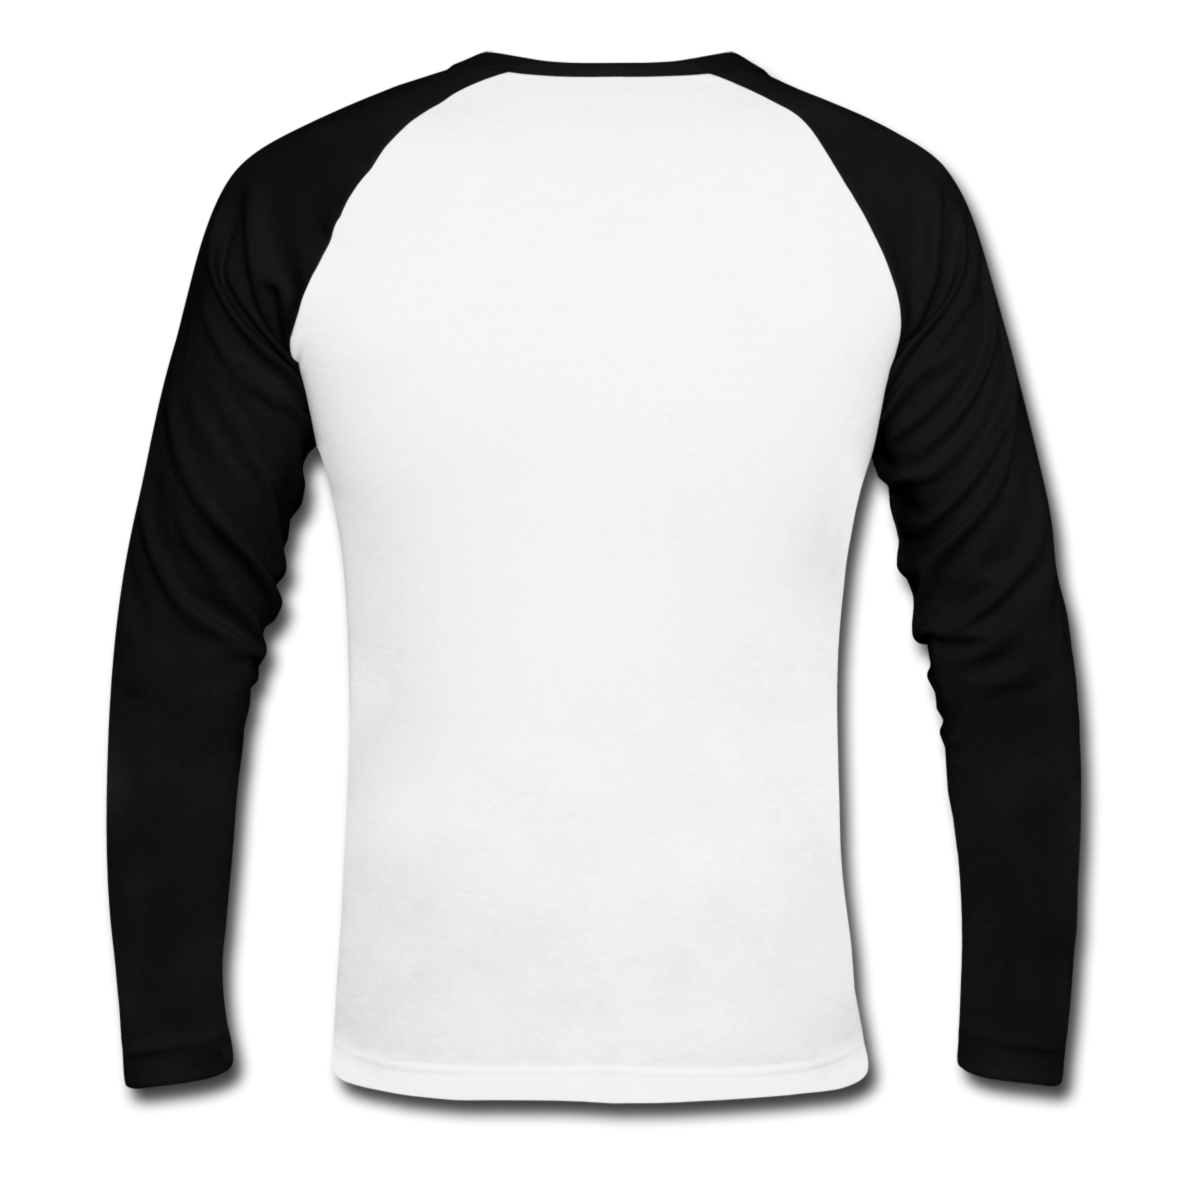 images for gt blank black t shirt png clipartsco